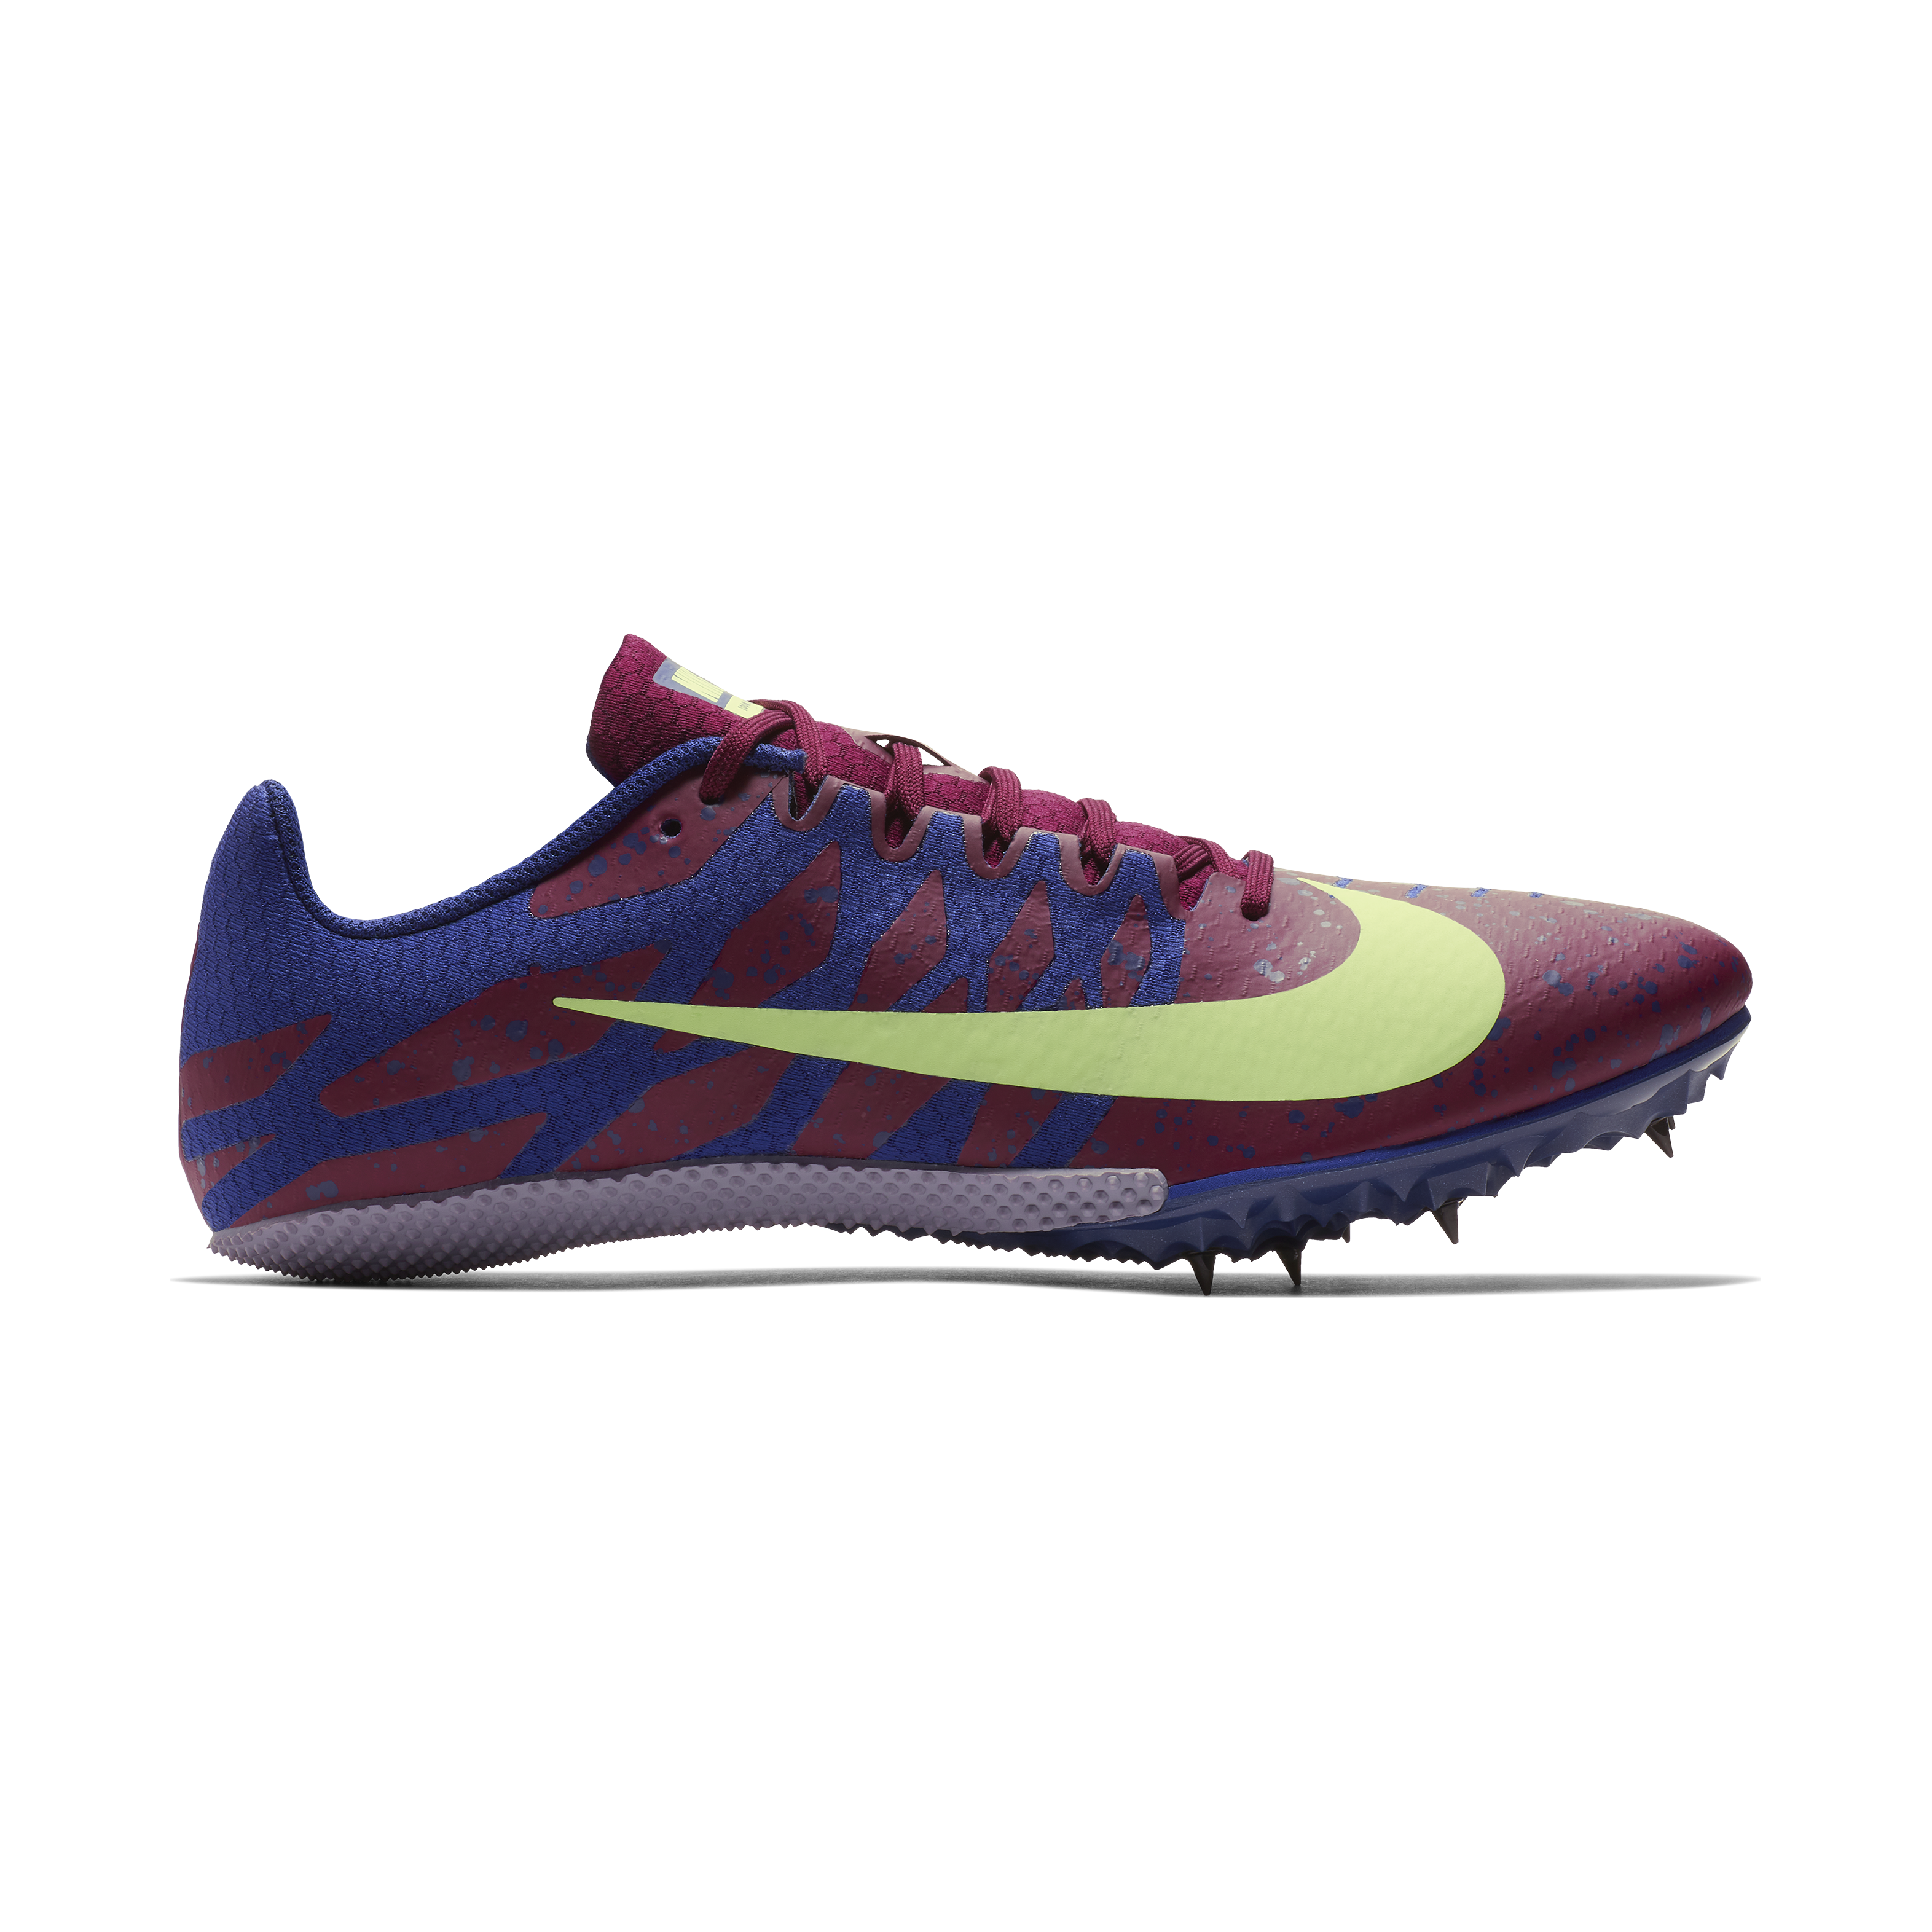 61bb0595537b9 Nike zoom rival running spikes poobie naidoos nike running shoe athletic  transparent sports png 3144x3144 Png